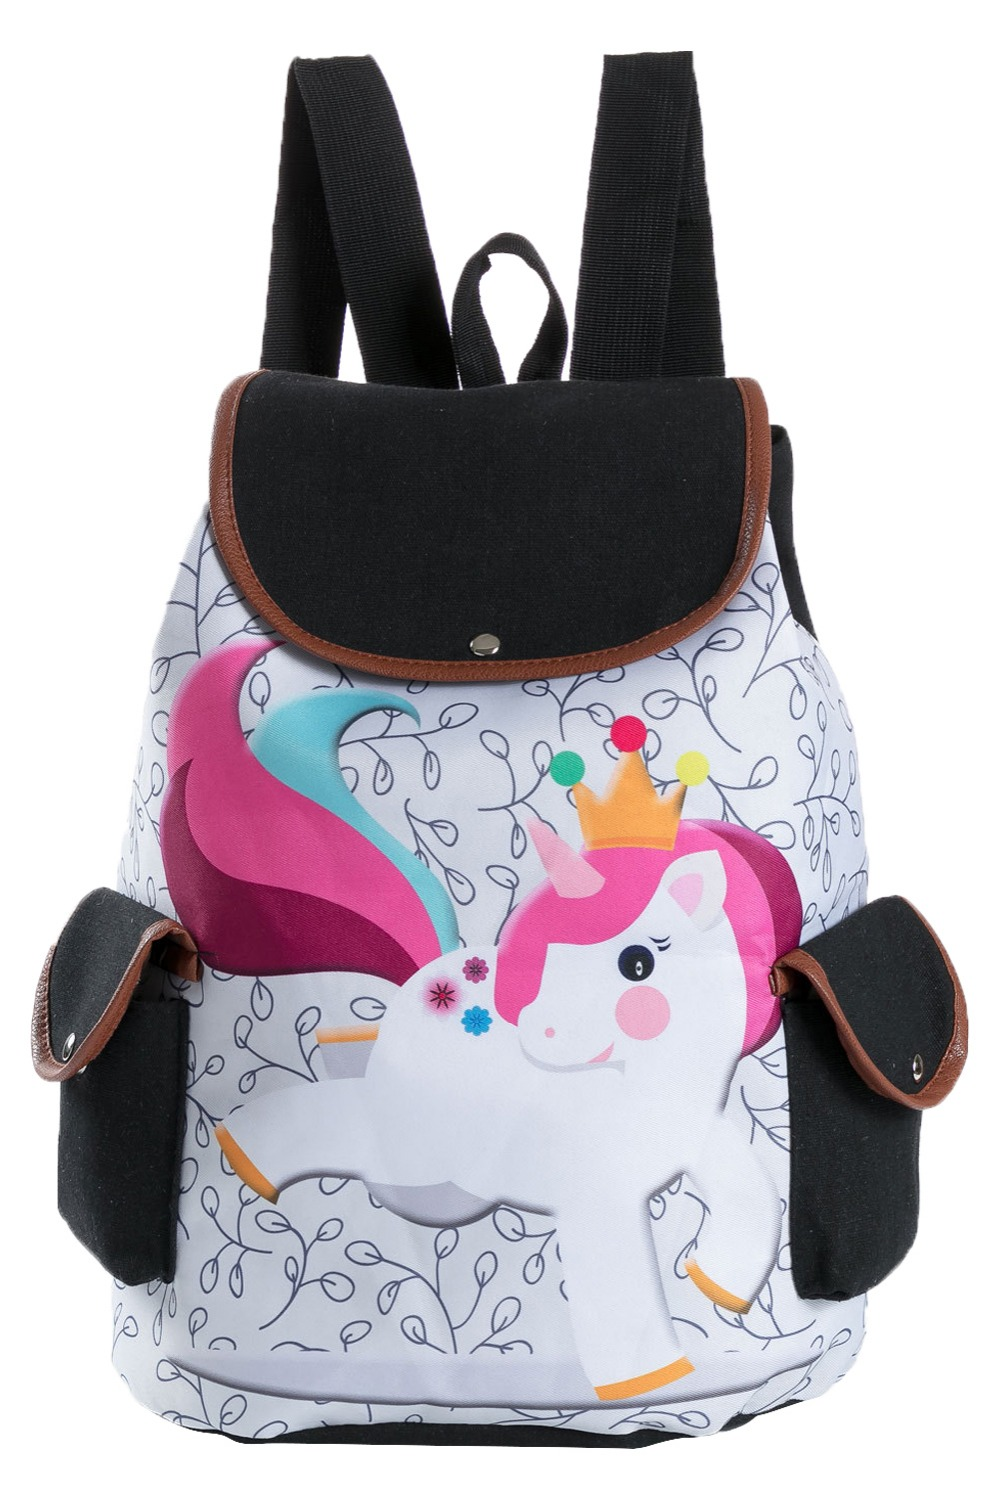 Unicorn womens printing shoulder bag large-capacity student backpack travel backpack ...